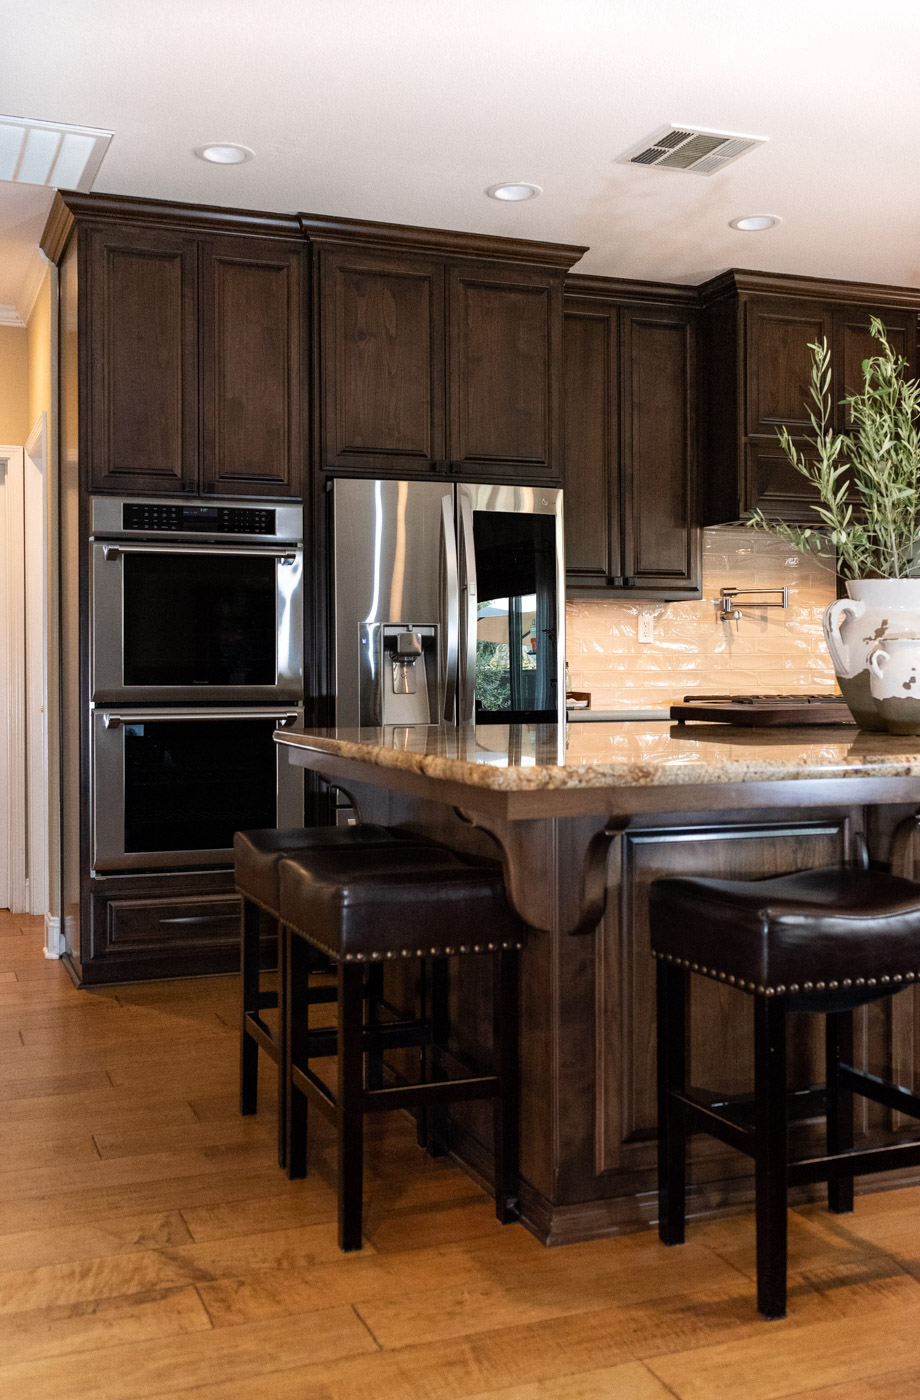 Traditional Mediterranean kitchen with dark wood stain cabinets and double ovens